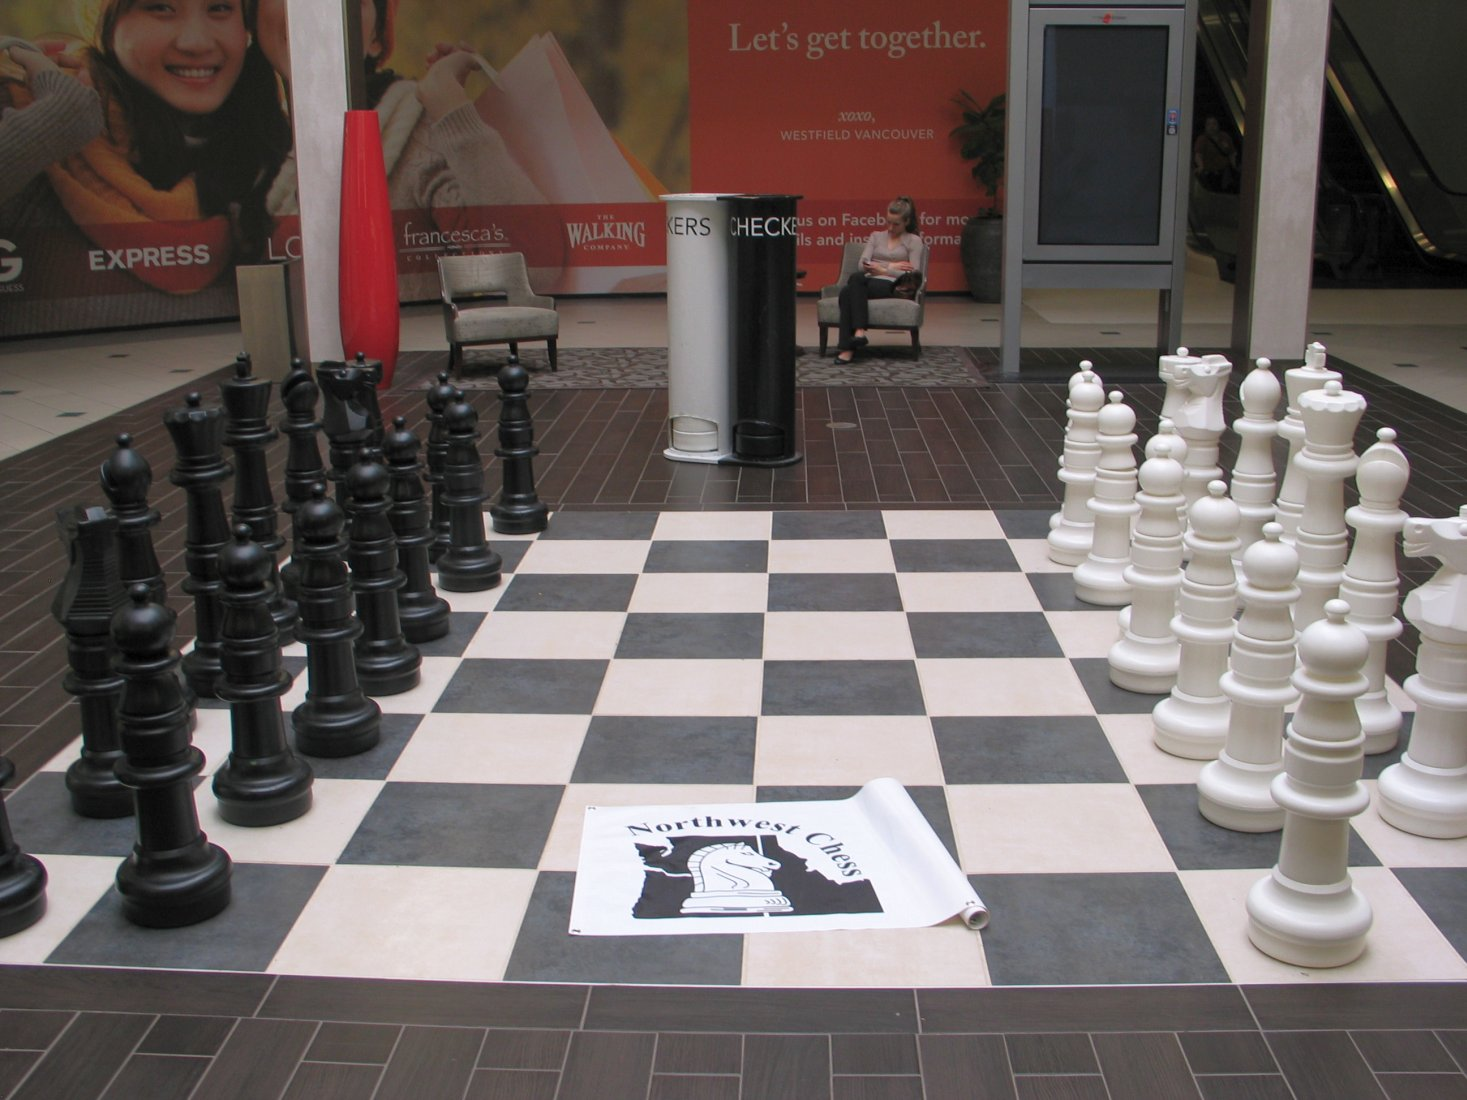 The large chess set has returned to the Westfield Mall in Vancouver Washington. The mall people took the pieces off the board during Christmas time to put a tree display in that area.